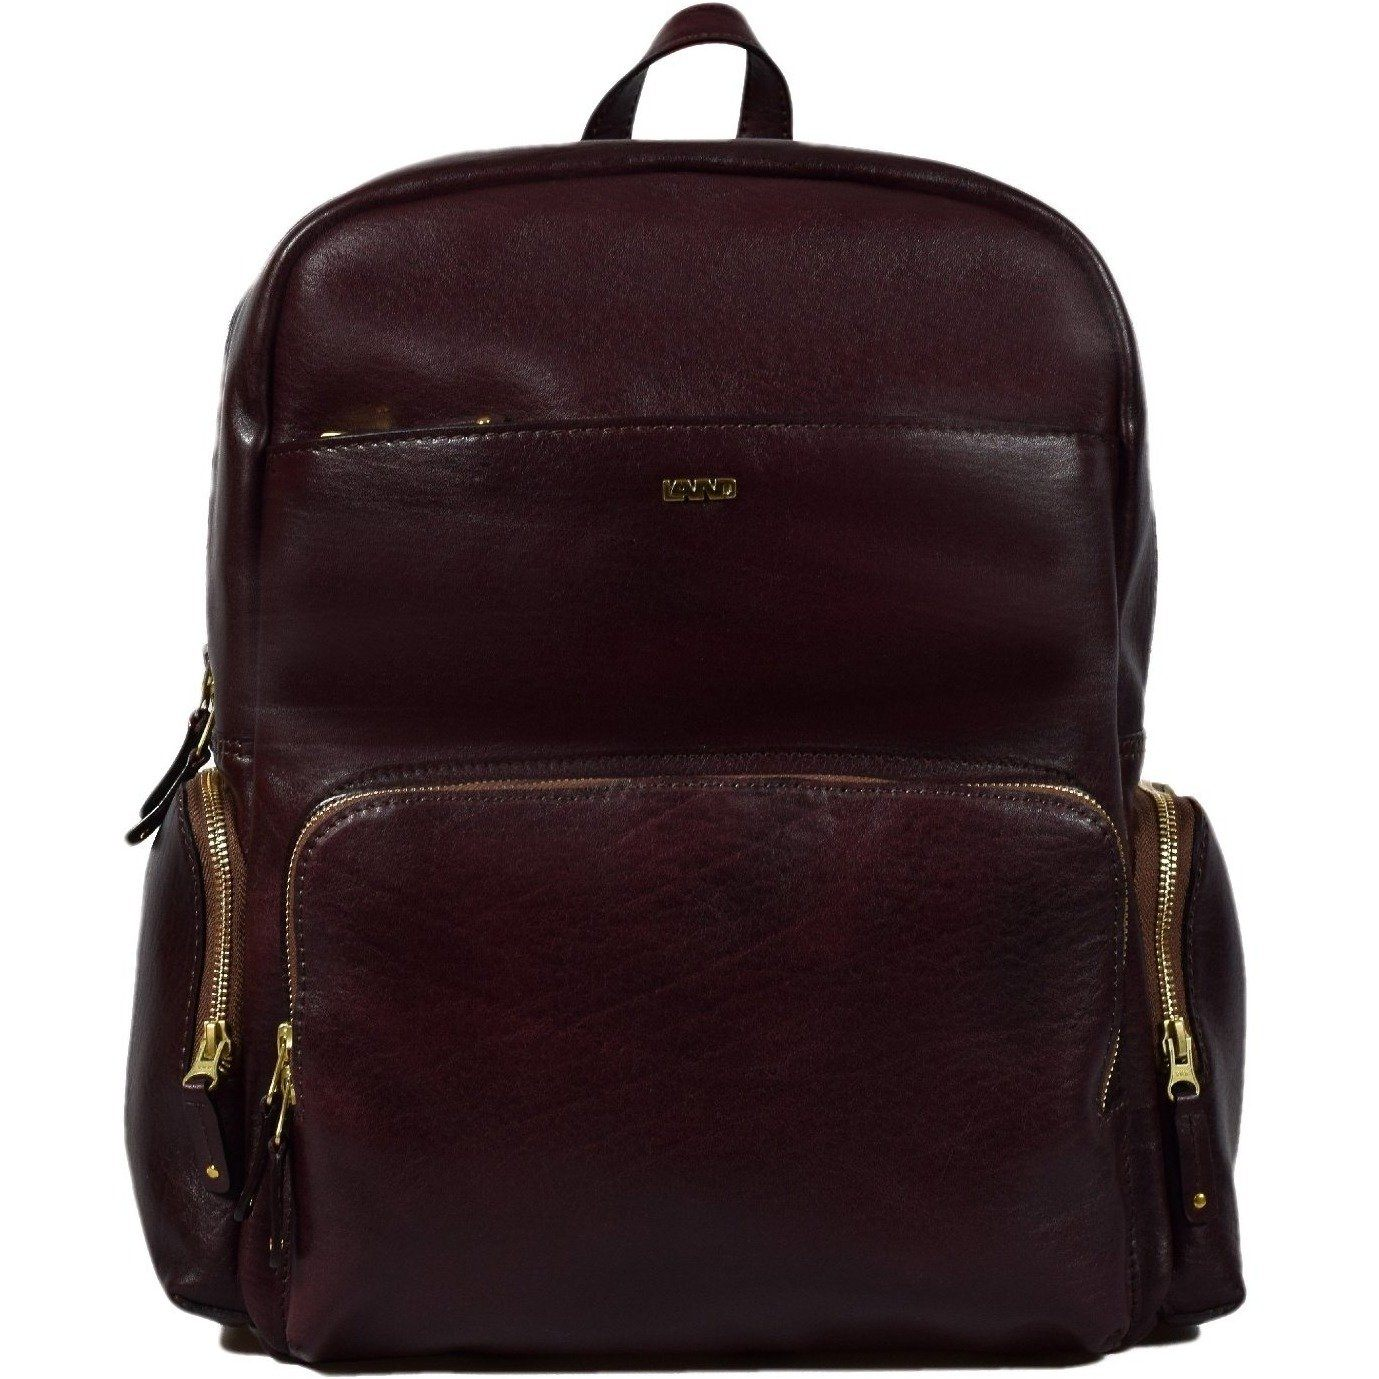 Limited Bardot Ladies Backpack, Backpack | LAND Leather